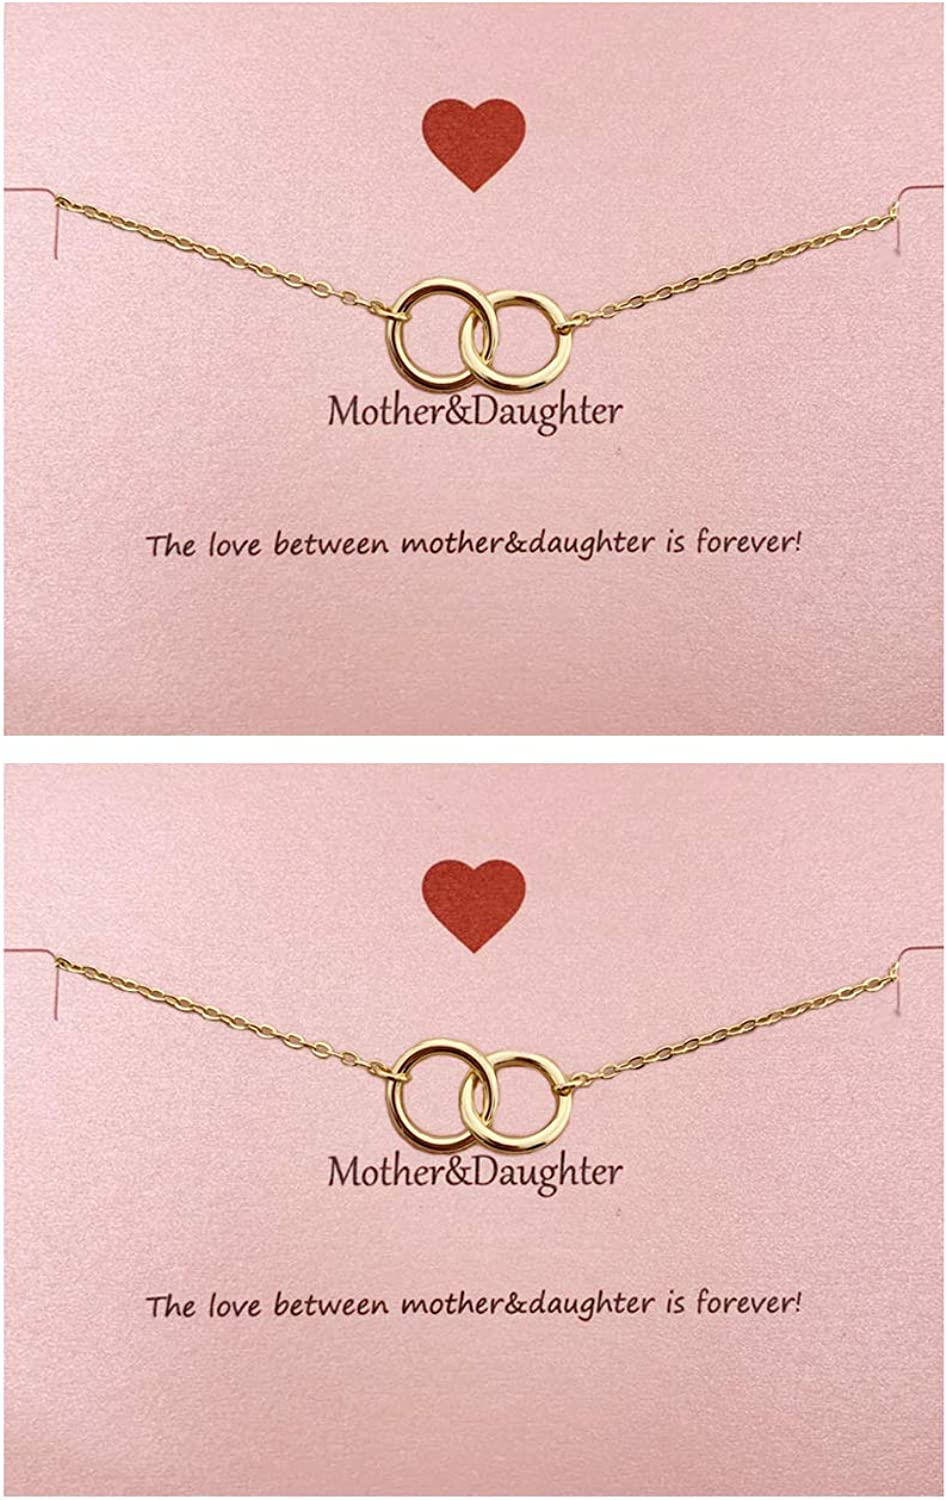 Your Always Charm Mother Daughter Bracelet Set for 2,Interlocking Heart Mothers Day Jewelry Gifts from Daughter